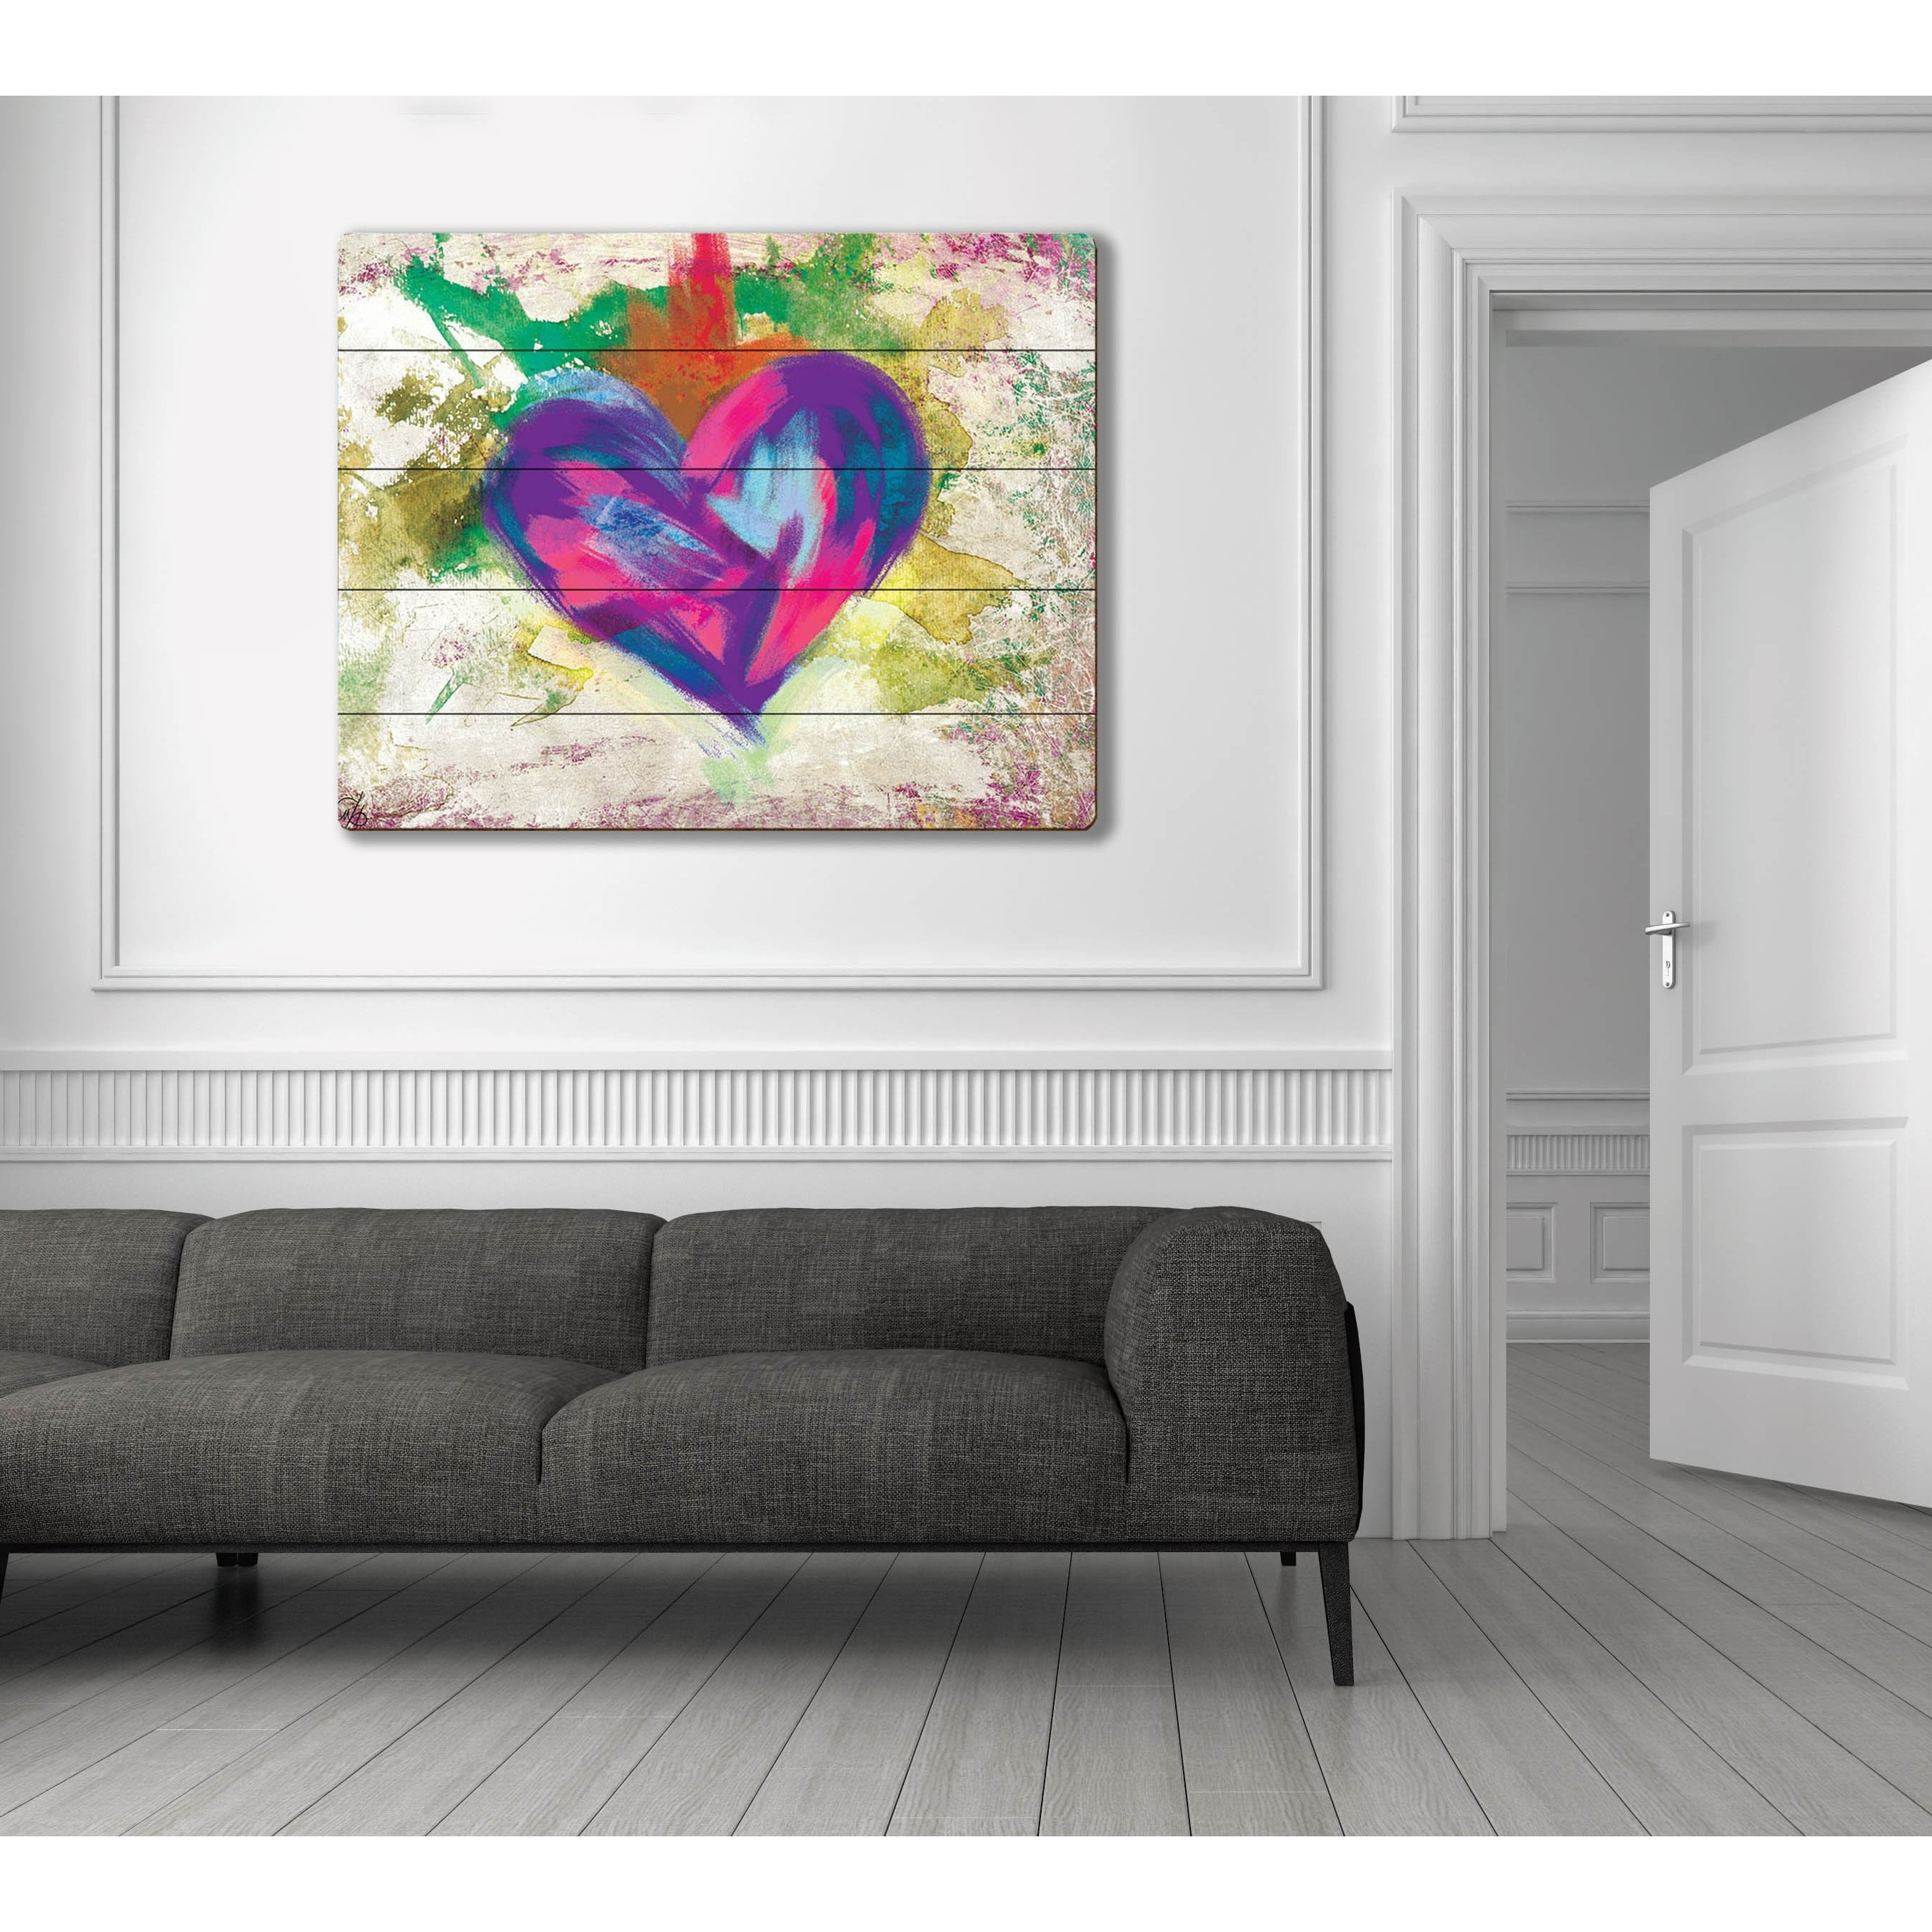 Widely Used Abstract Heart Wall Art Within Up Beat Violet Abstract Heart Wall Art On Wood – Free Shipping (View 15 of 15)